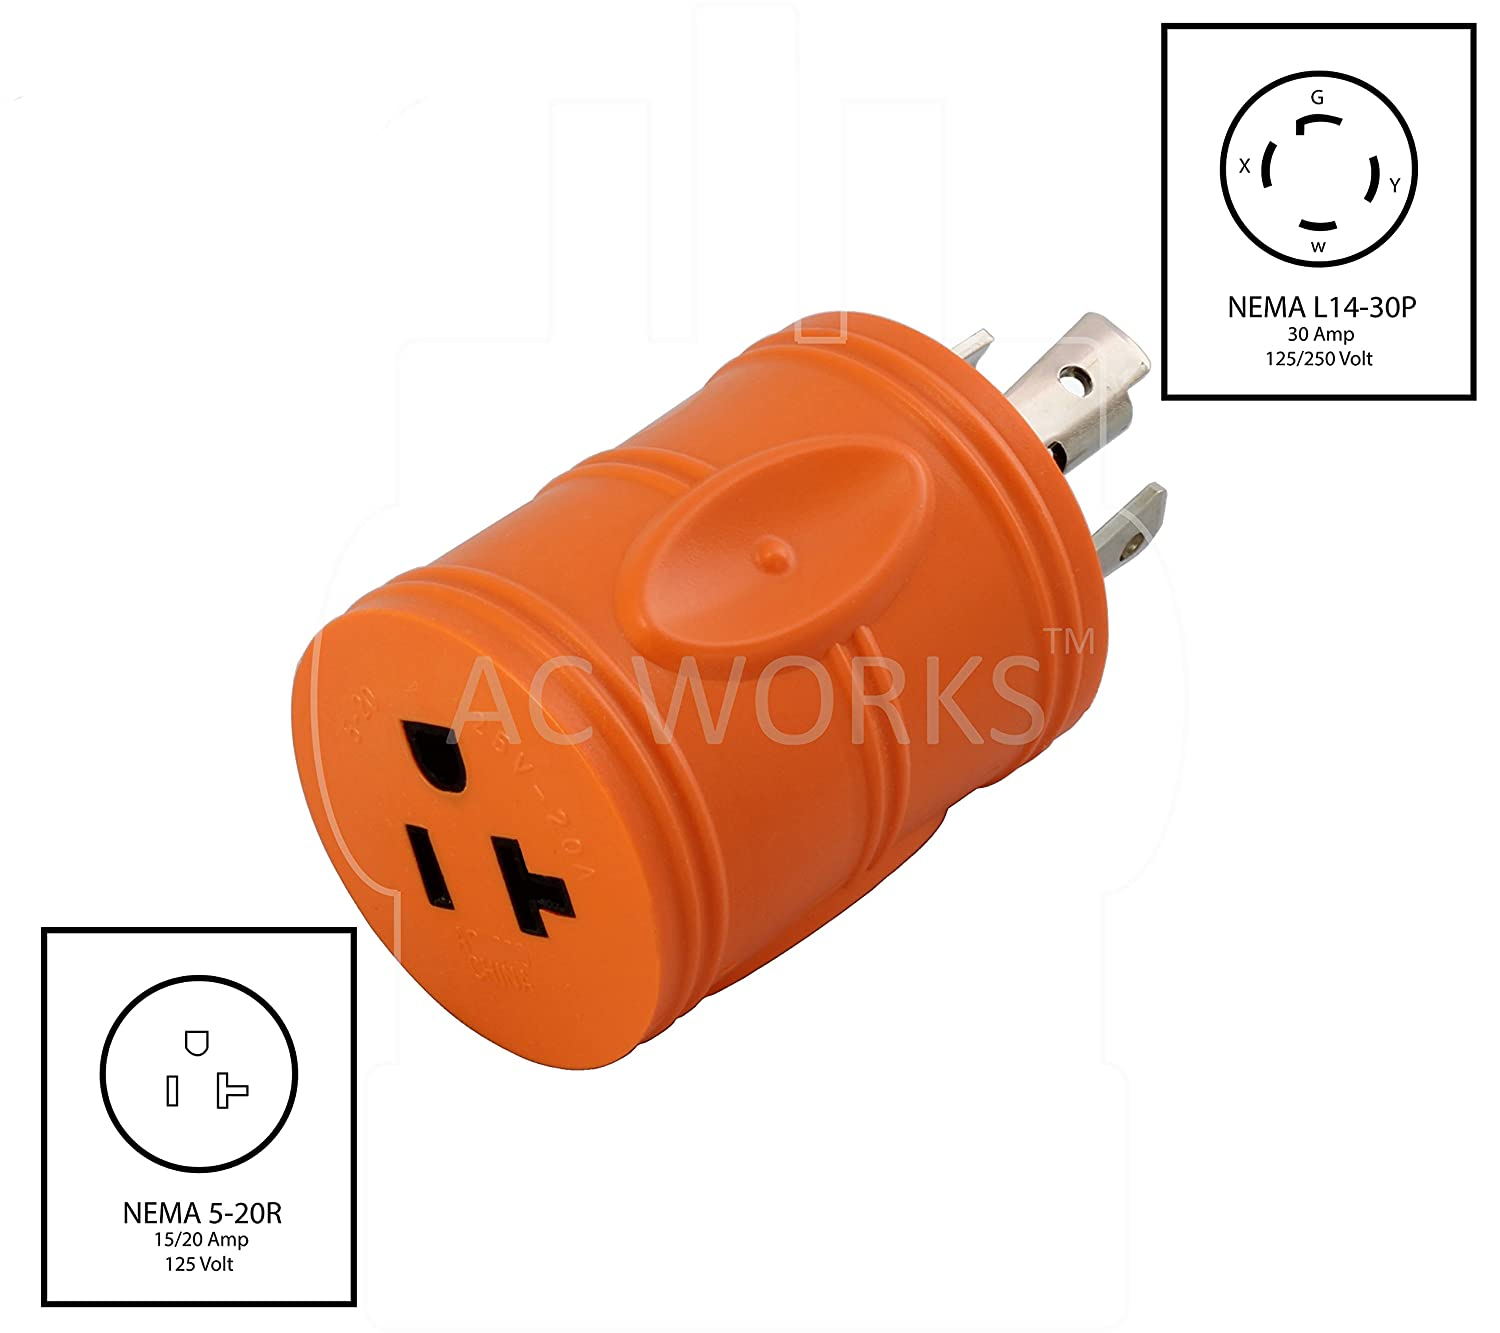 Ac Works Adl1430520 Locking Adapter L14 30p 30amp 125 250volt 4 5 Plug Wiring Prong Male To 15 20r Regular Household 20amp Female Connector